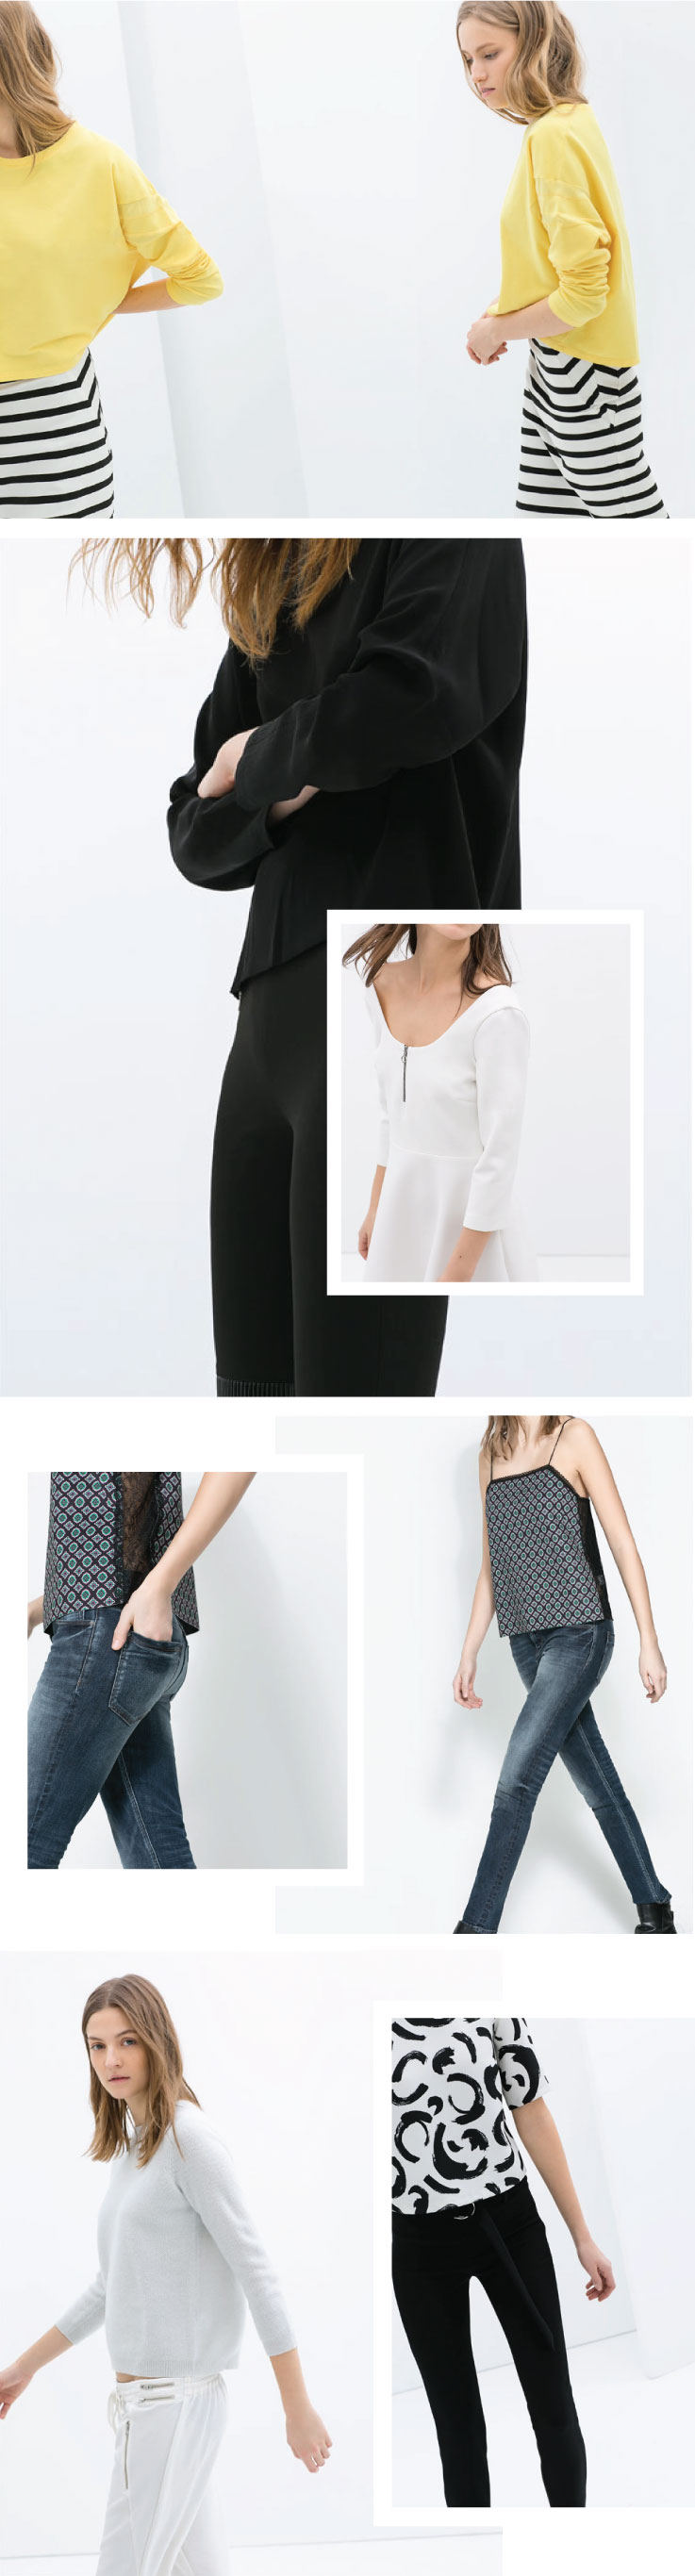 Inspired by Zara's dynamic product pictures. Look Book inspiration | www.alicia-carvalho.com/blog